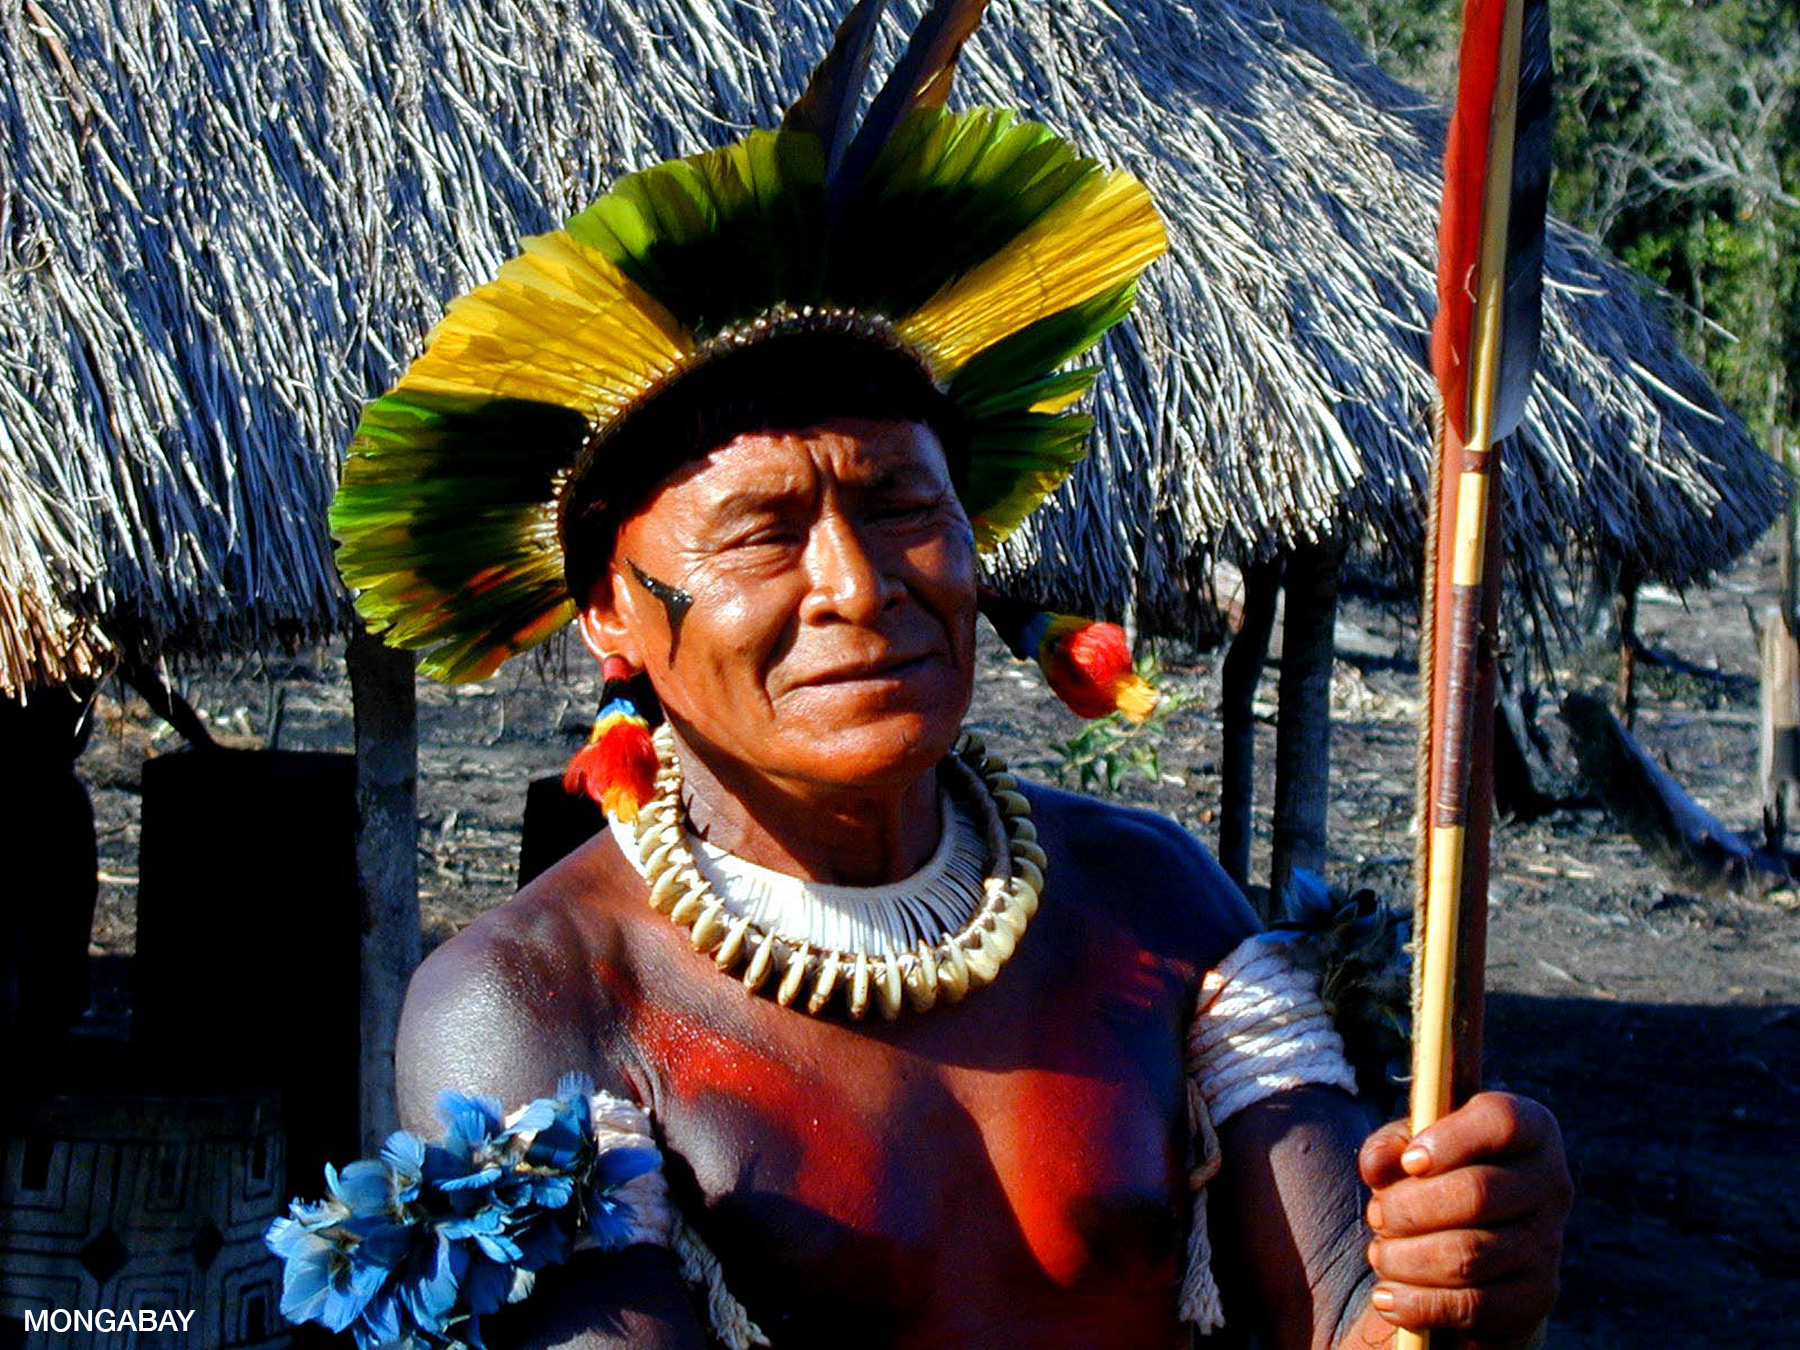 People In The Amazon Rainforest